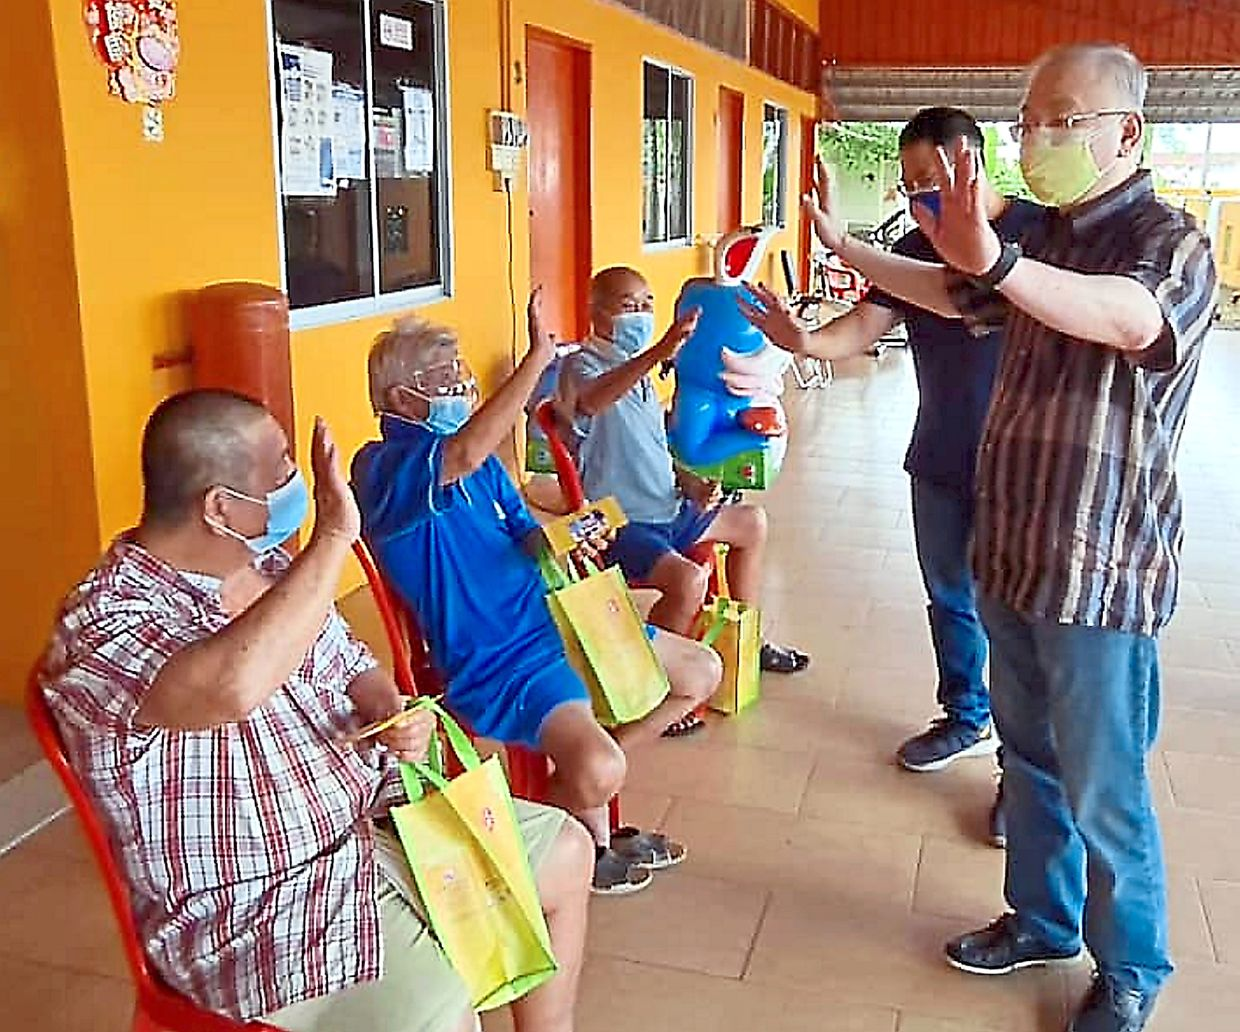 Spreading cheer: Dr Wee spending time with the senior citizens at Rumah Sejahtera Yong Peng.